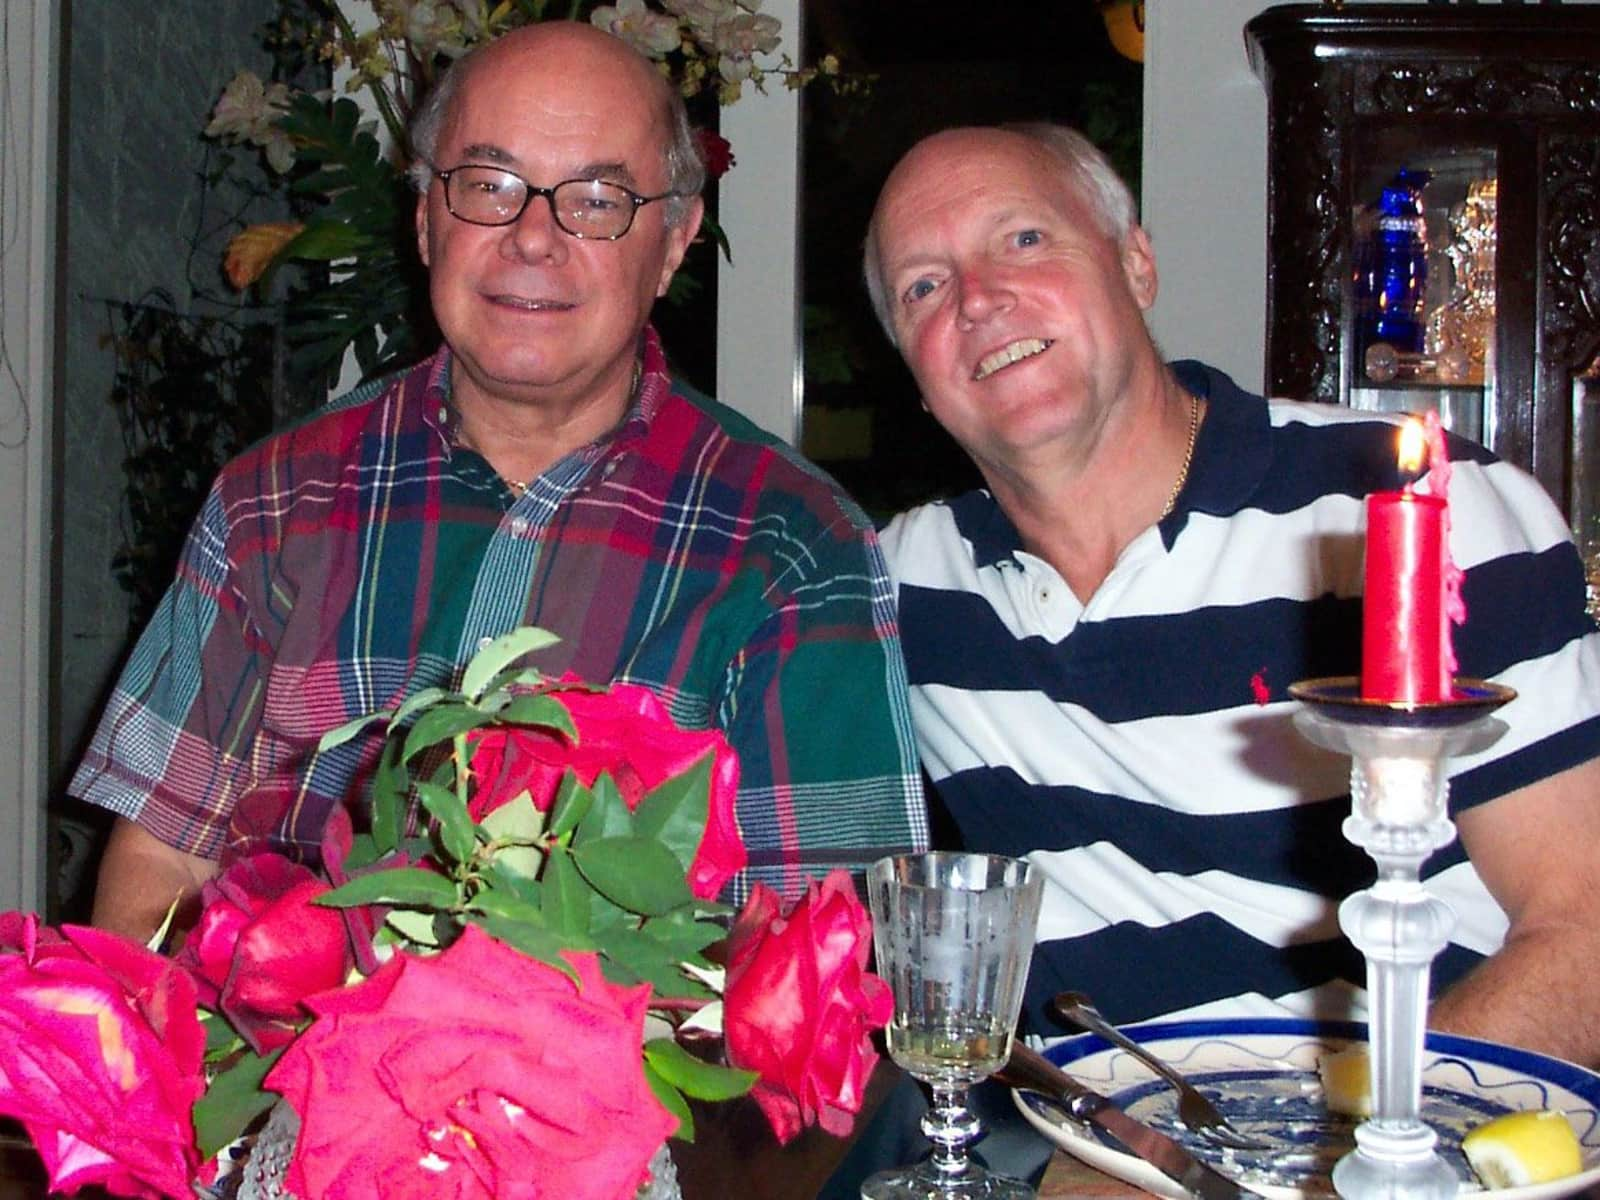 W. harvey & Robert a. from Palm Springs, California, United States